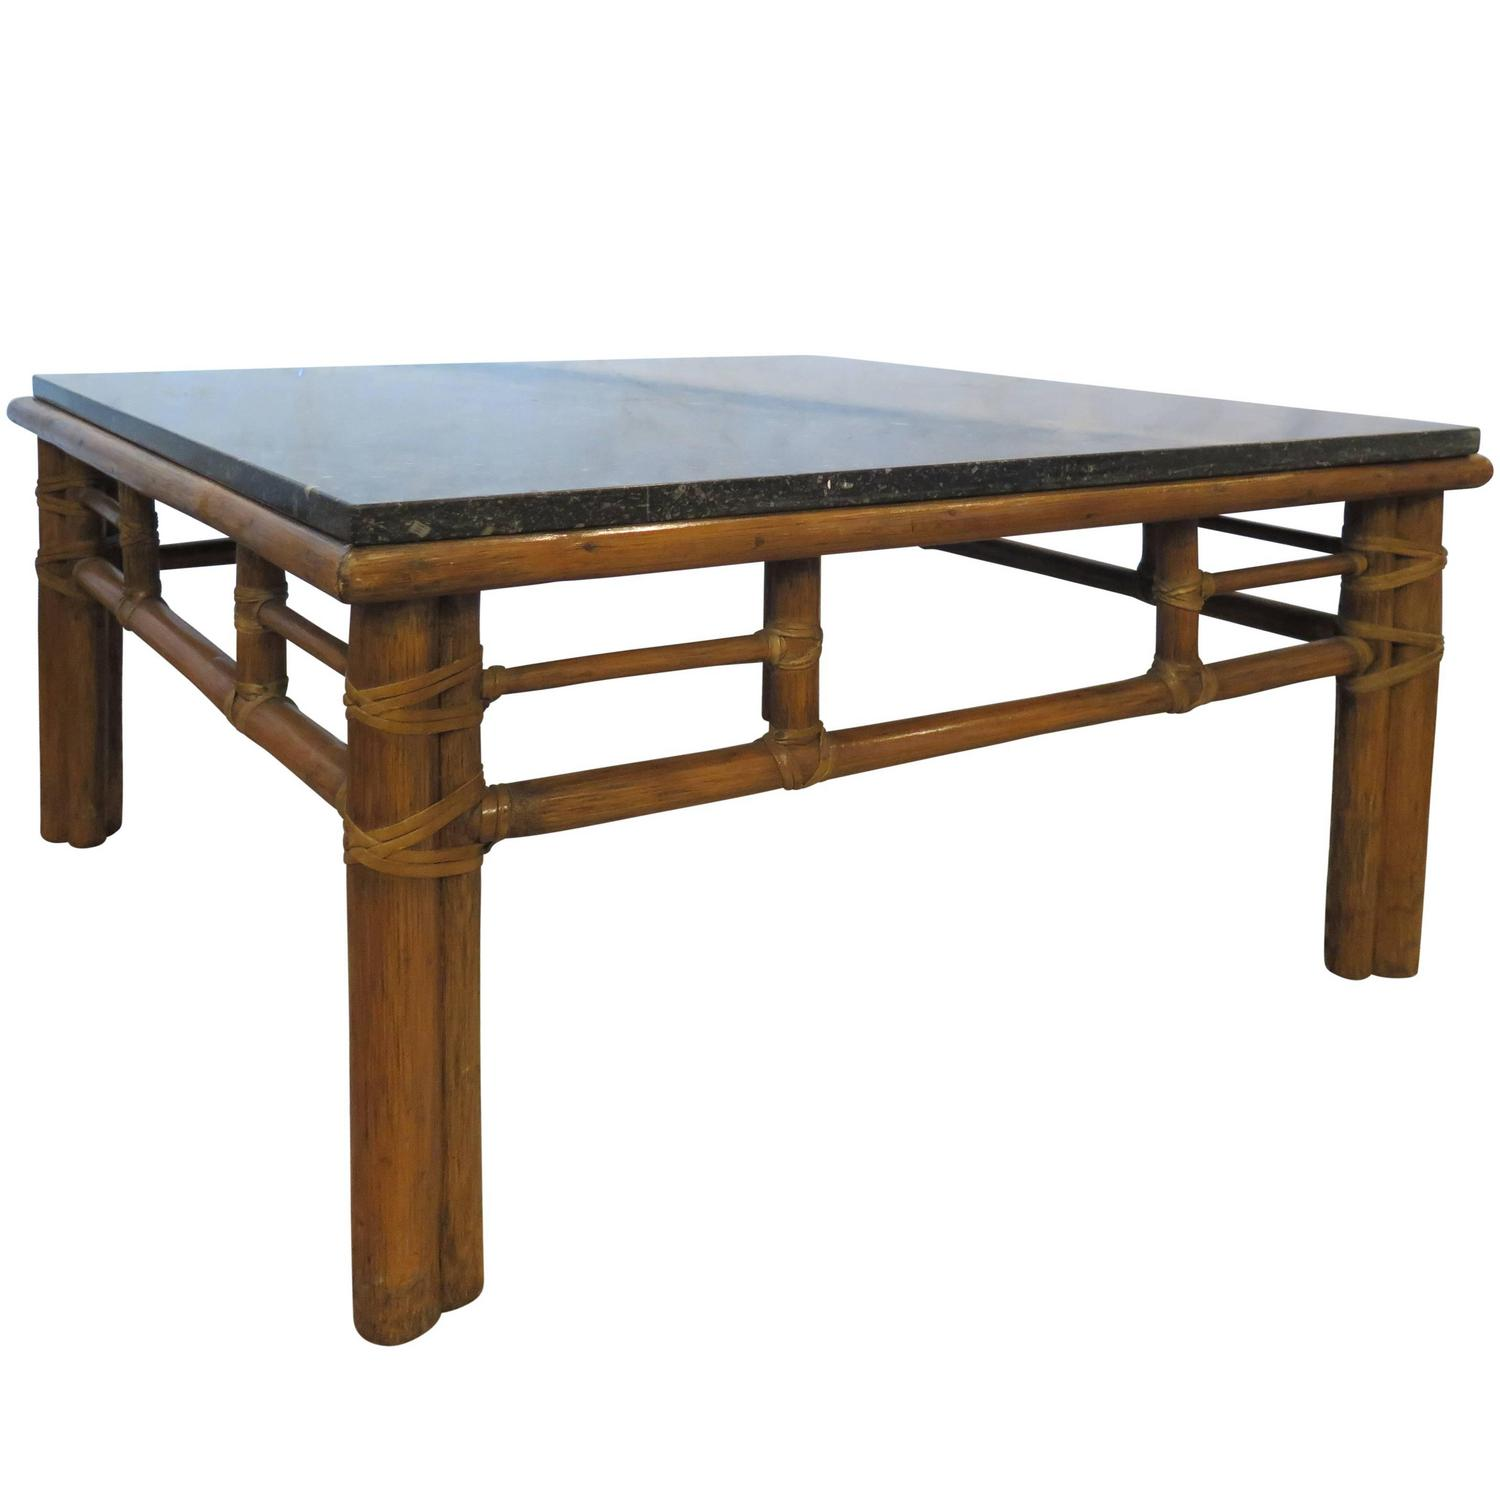 Mcguire coffee table with black marble top for sale at 1stdibs for Stone topped coffee tables